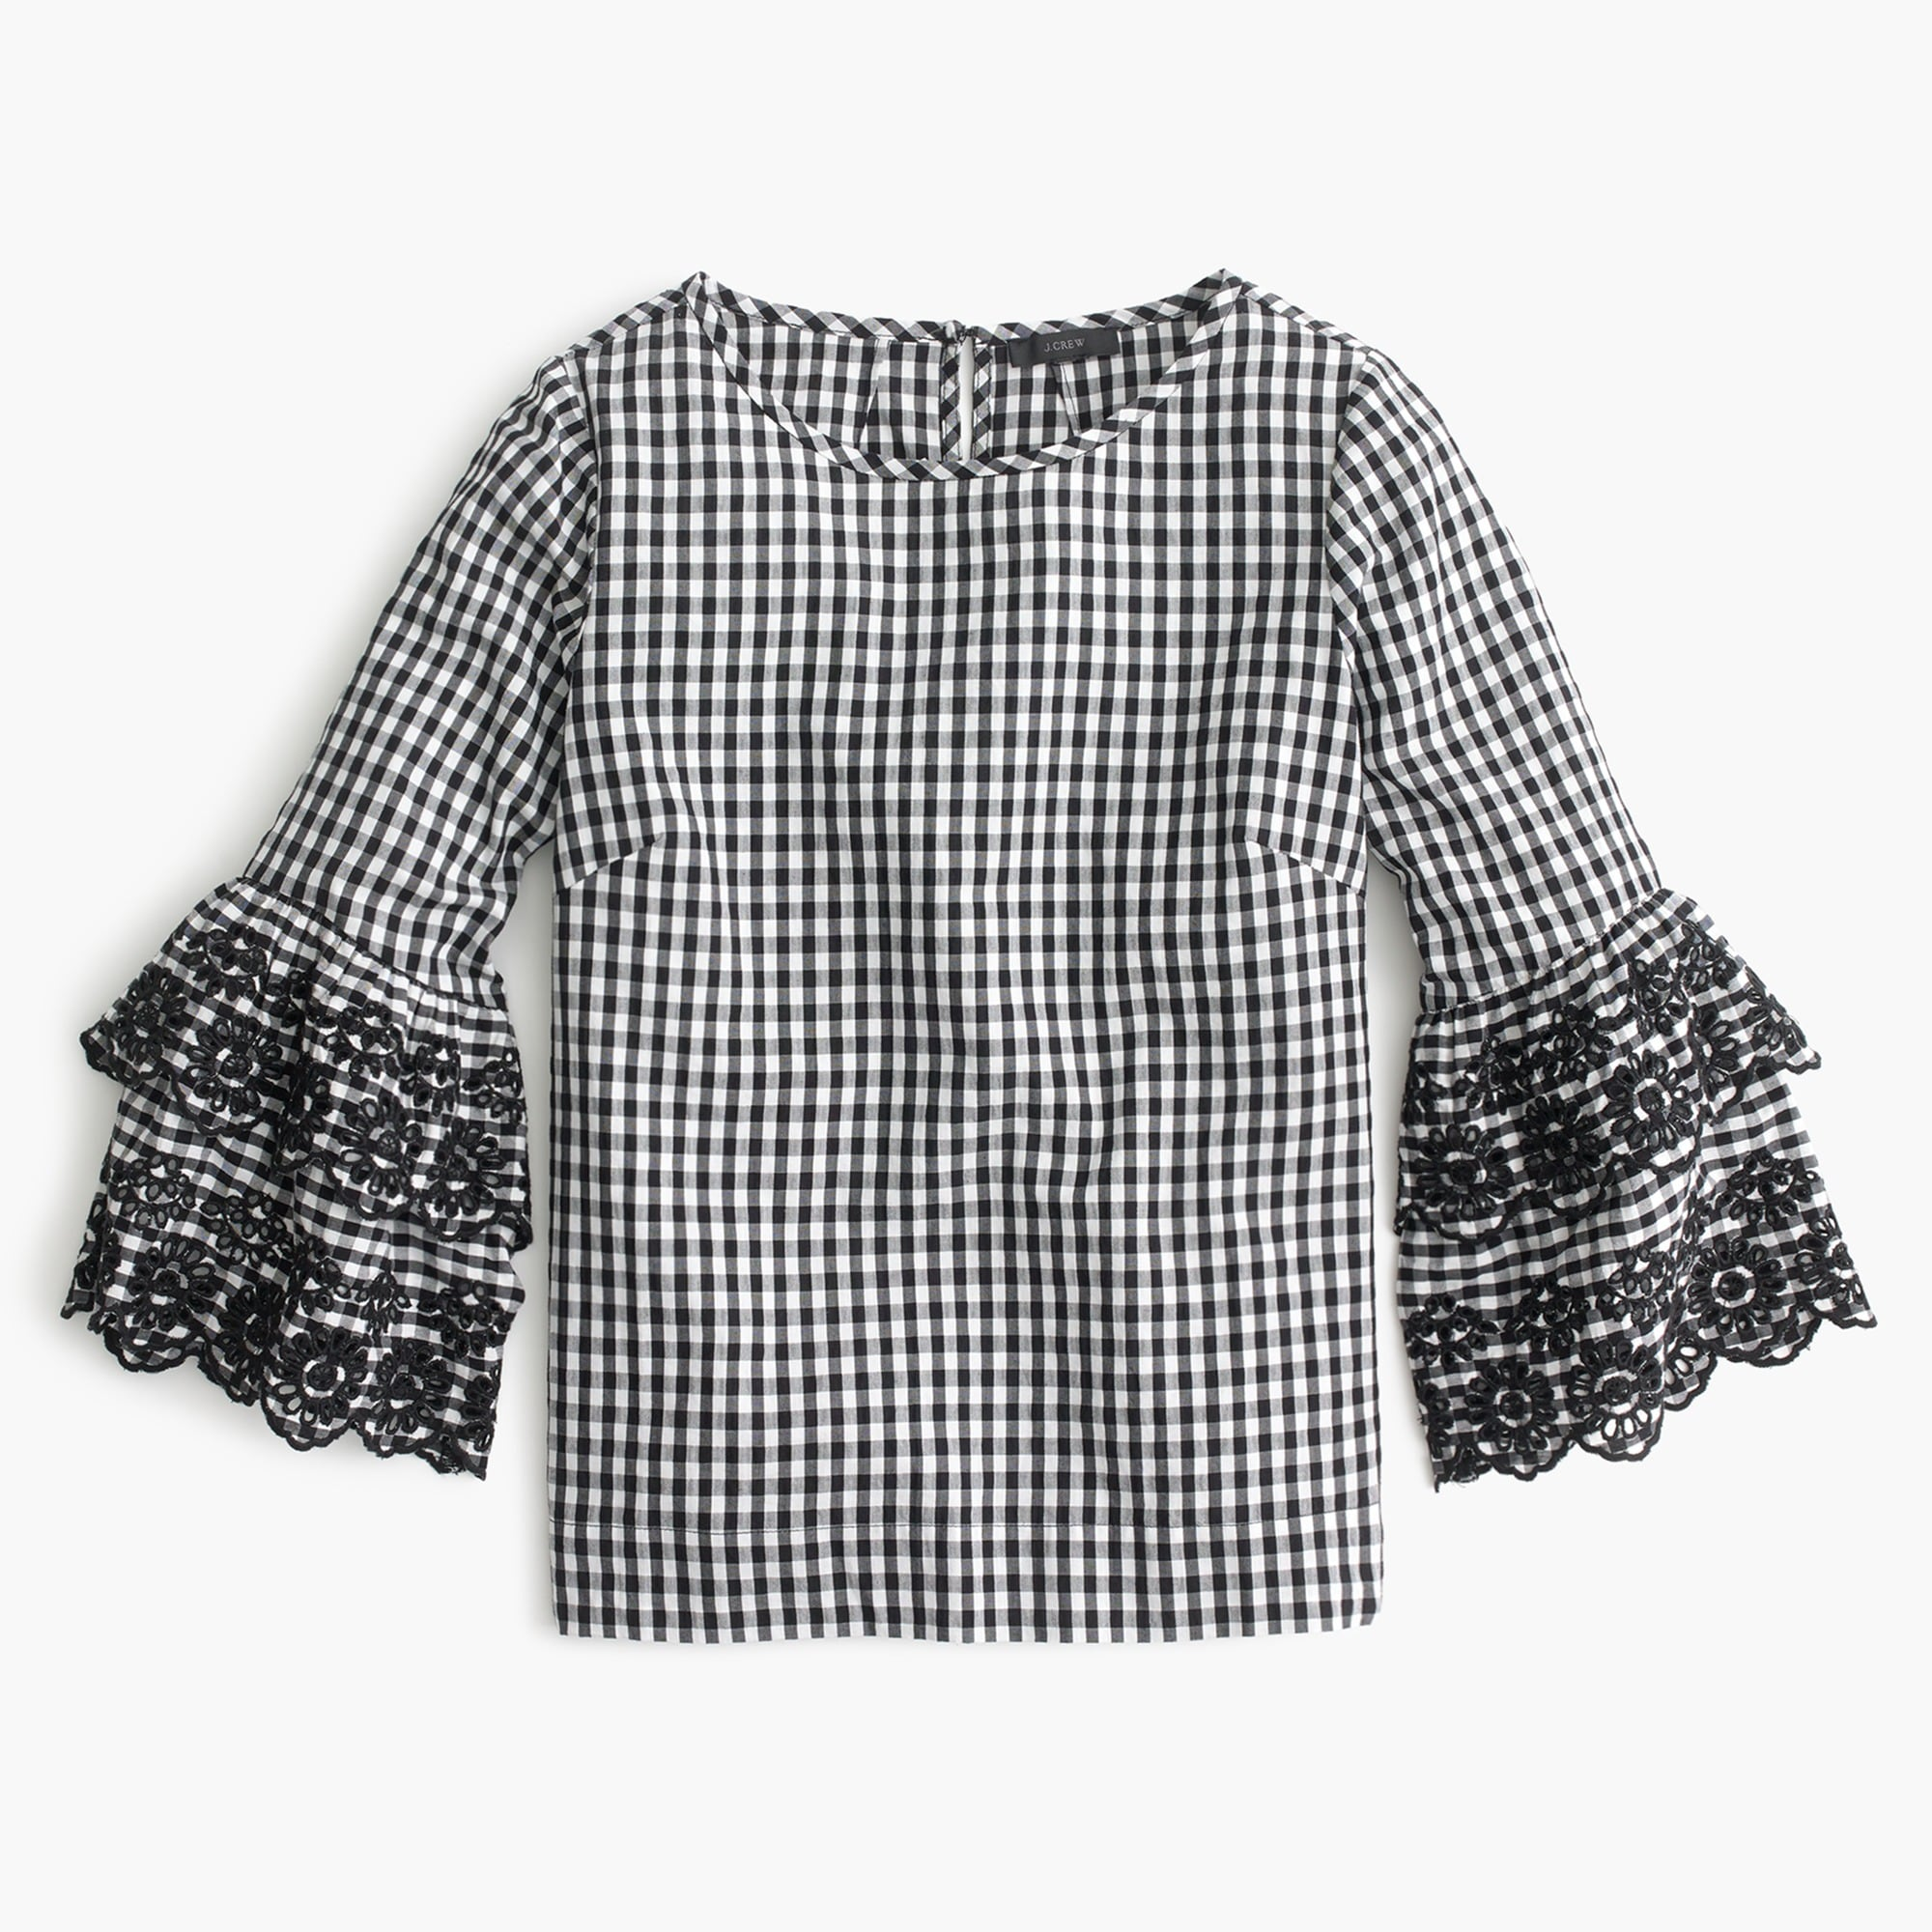 Image 1 for Tiered bell-sleeve top in gingham